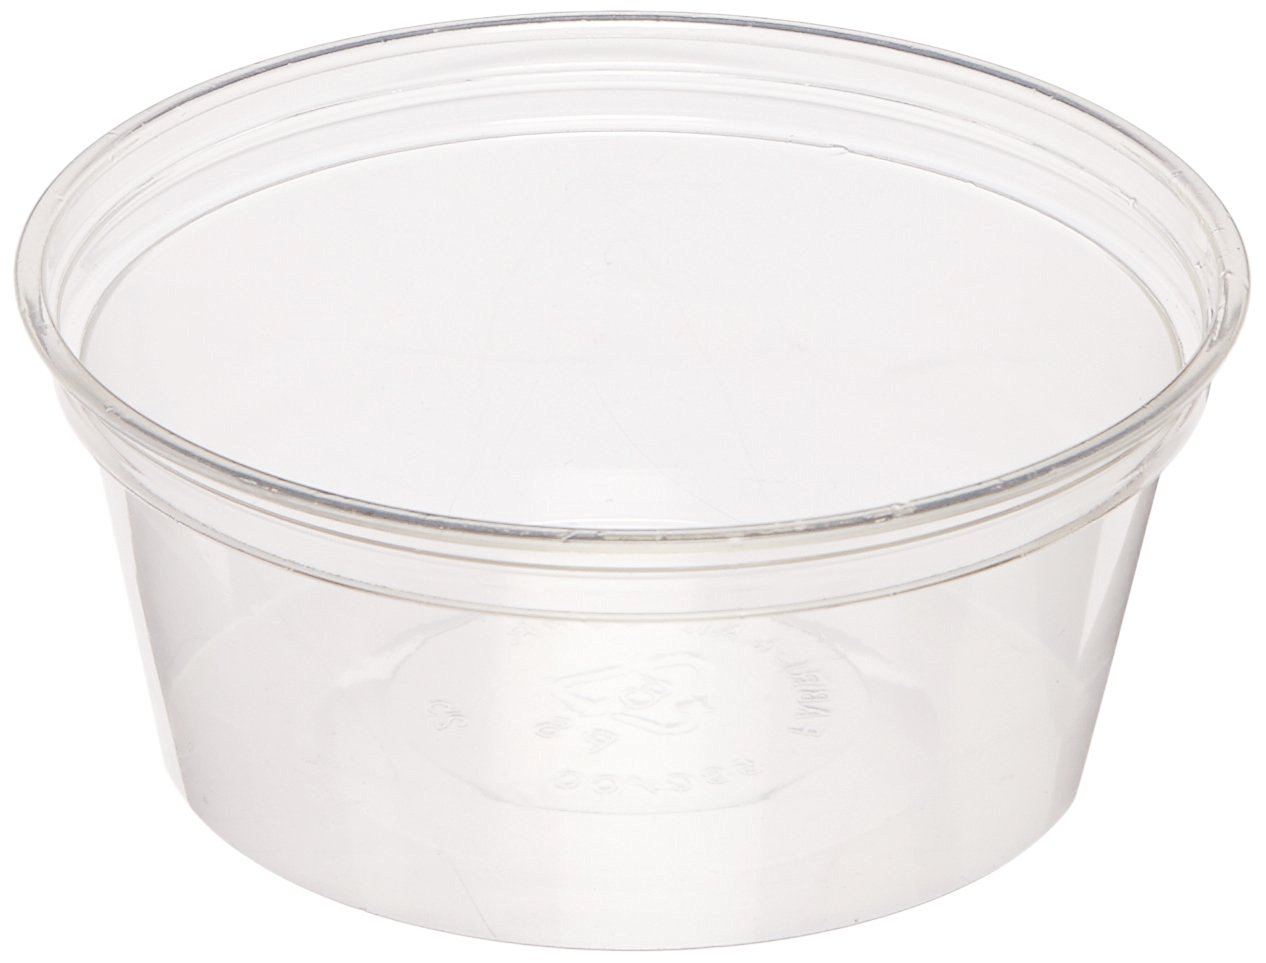 Fabri-Kal FK5CC 5-Ounce Capacity 3.8-Inch Top Width by 2.9-Inch Bottom Width by 1.6-Inch Height Clear Polystyrene Food Container 100-Pack (Case of 10)